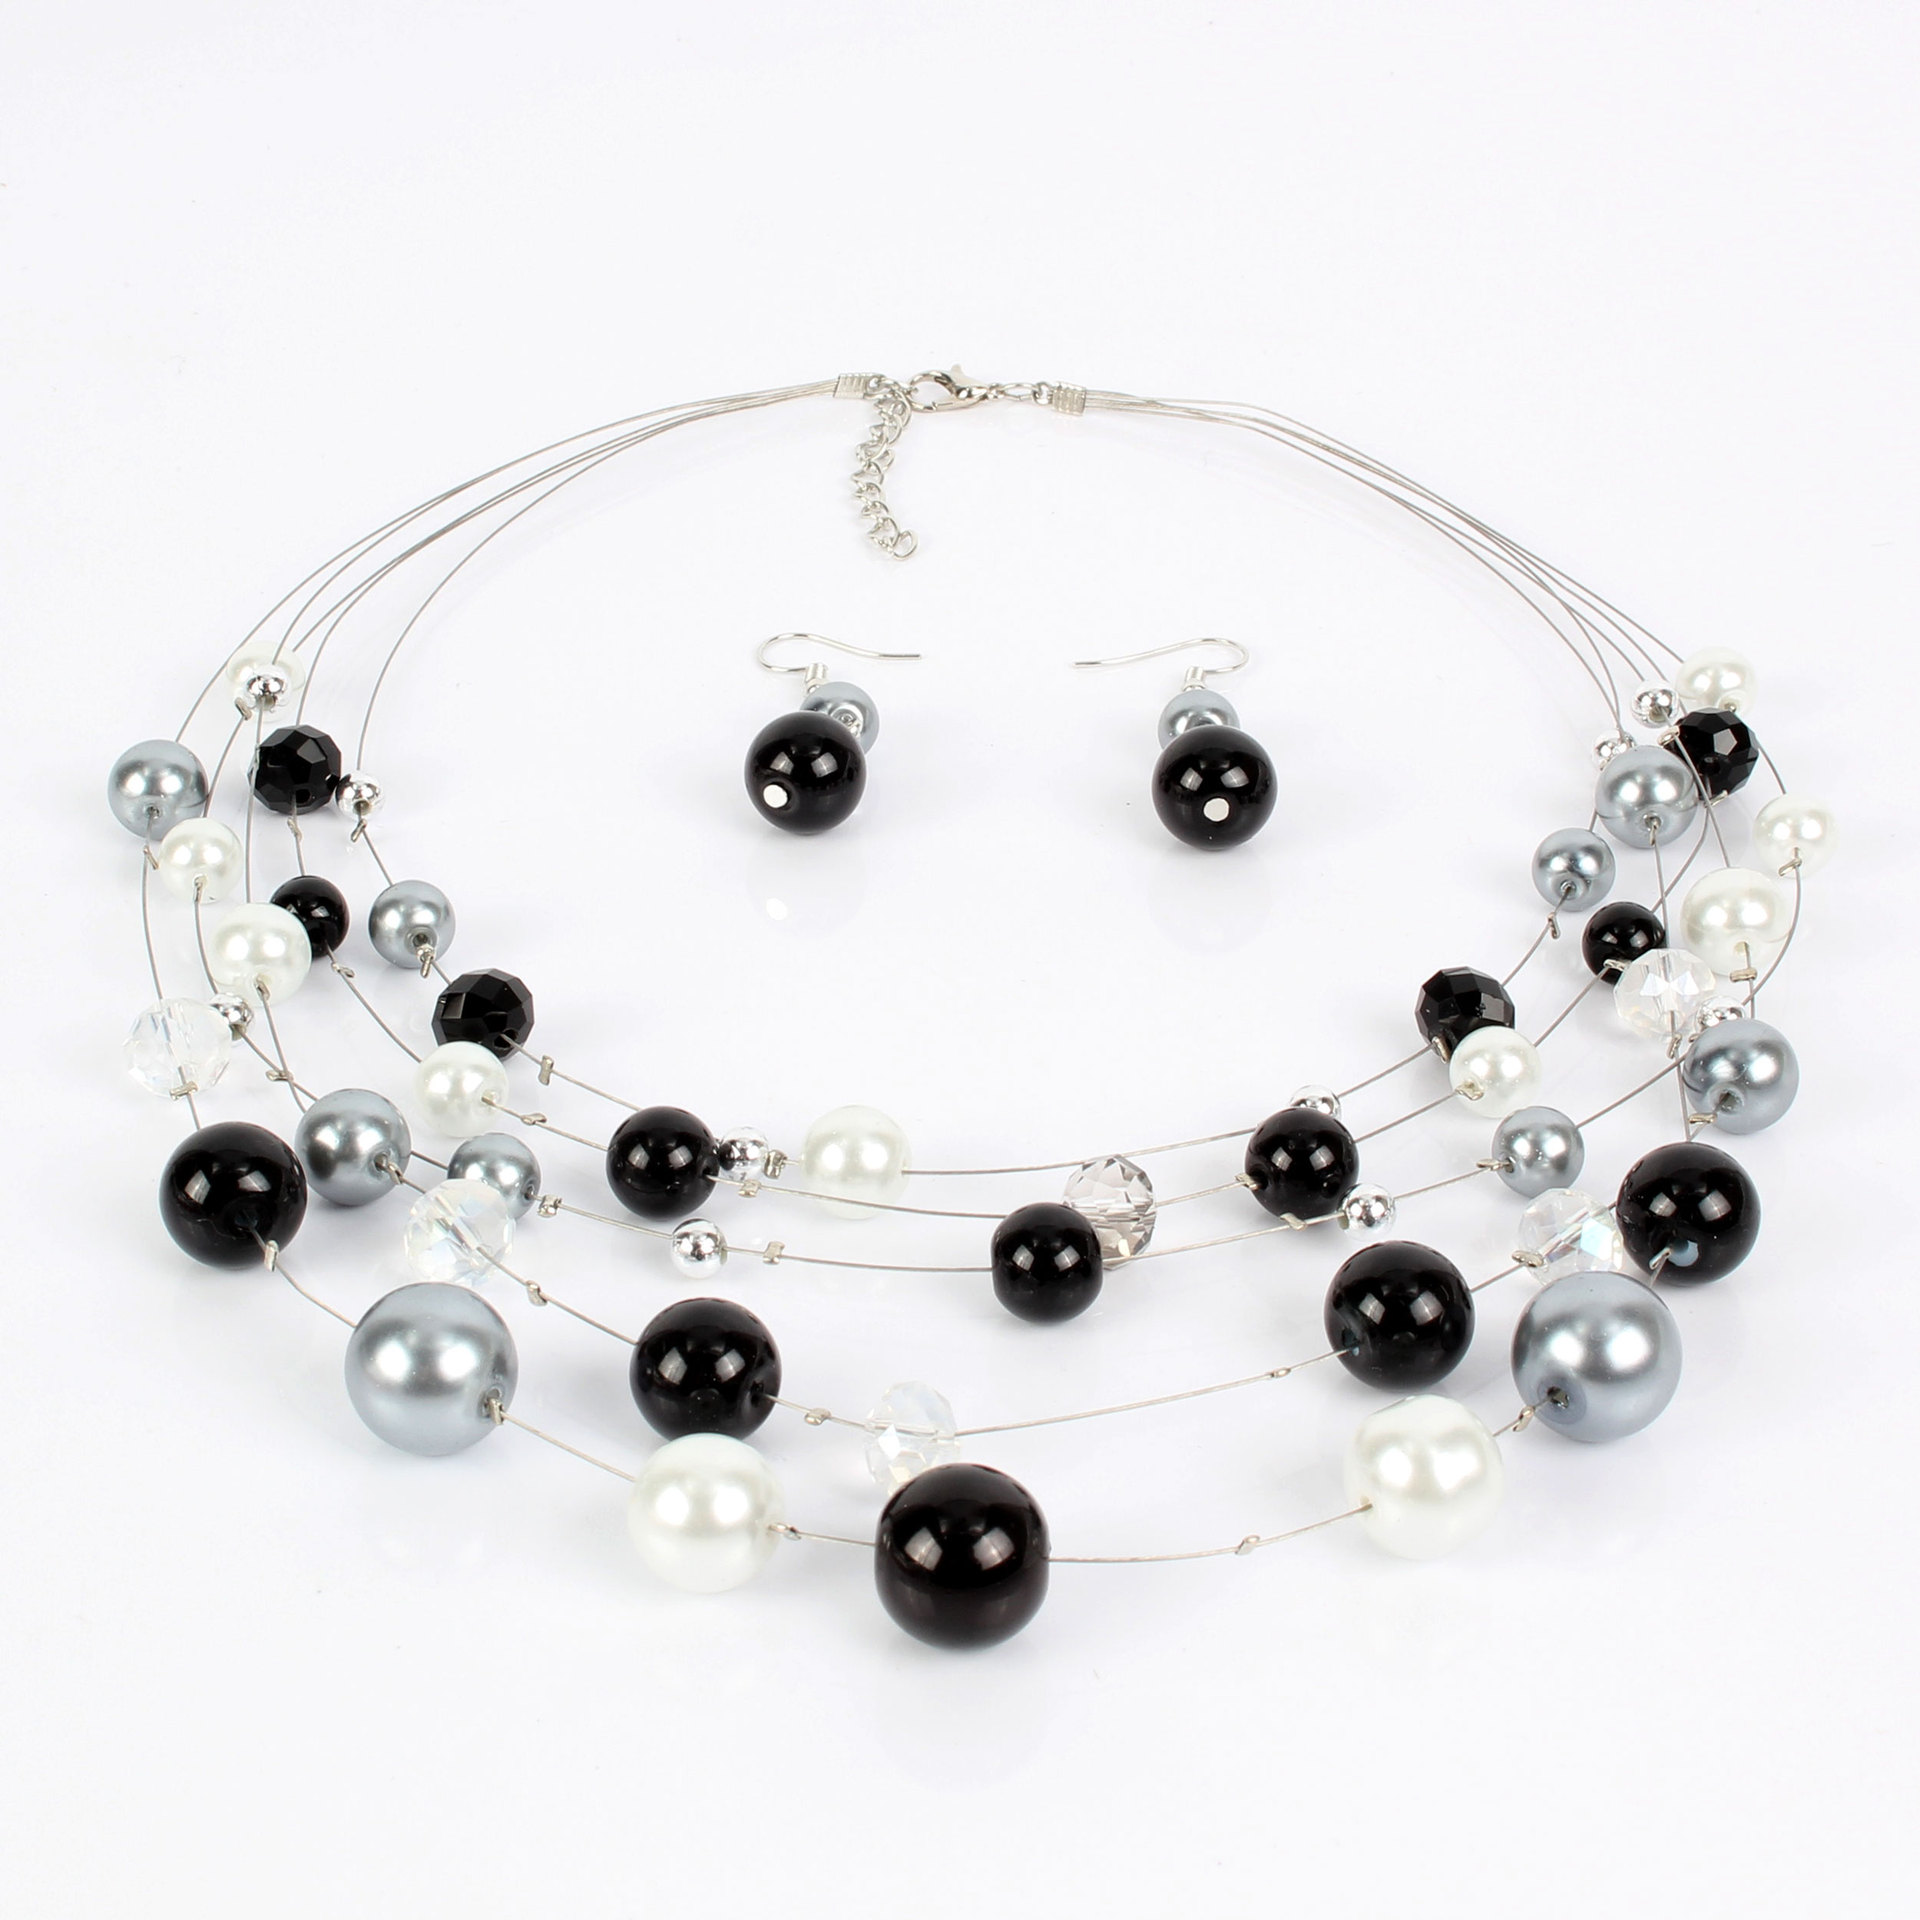 Womens Geometric Beads Simple clavicle chain Necklaces CT190416117631